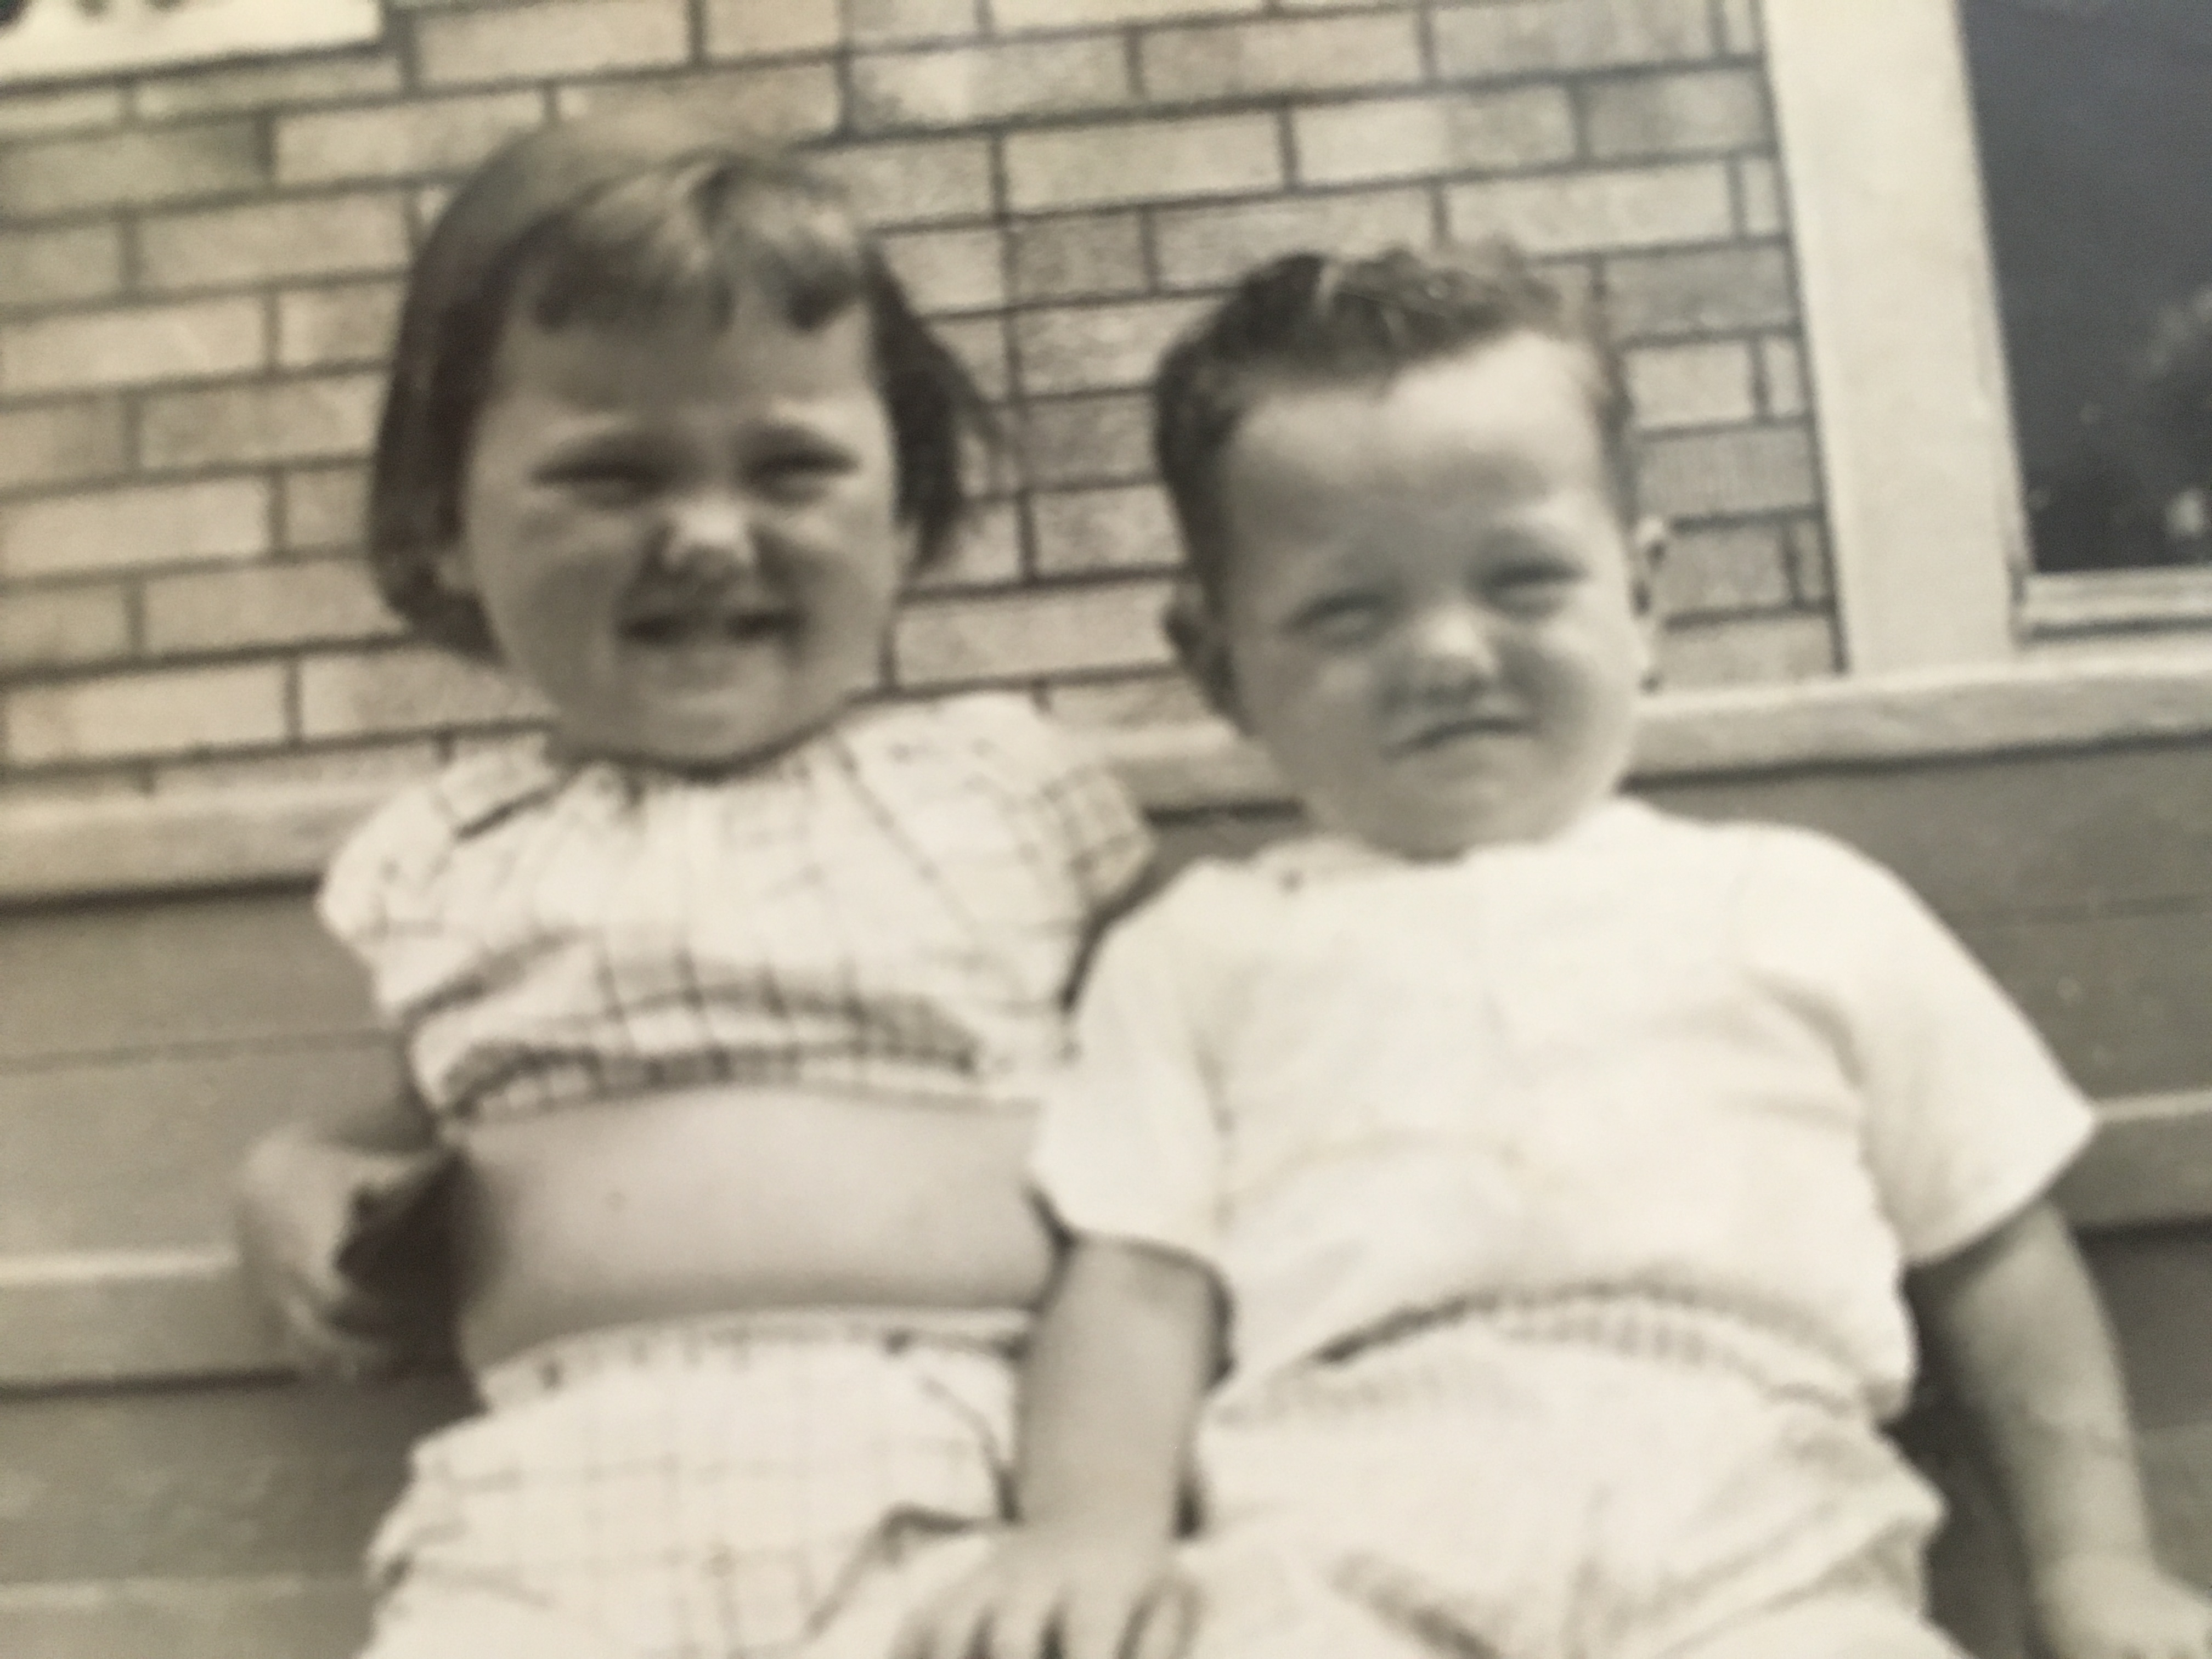 Bernie and his sister as small children